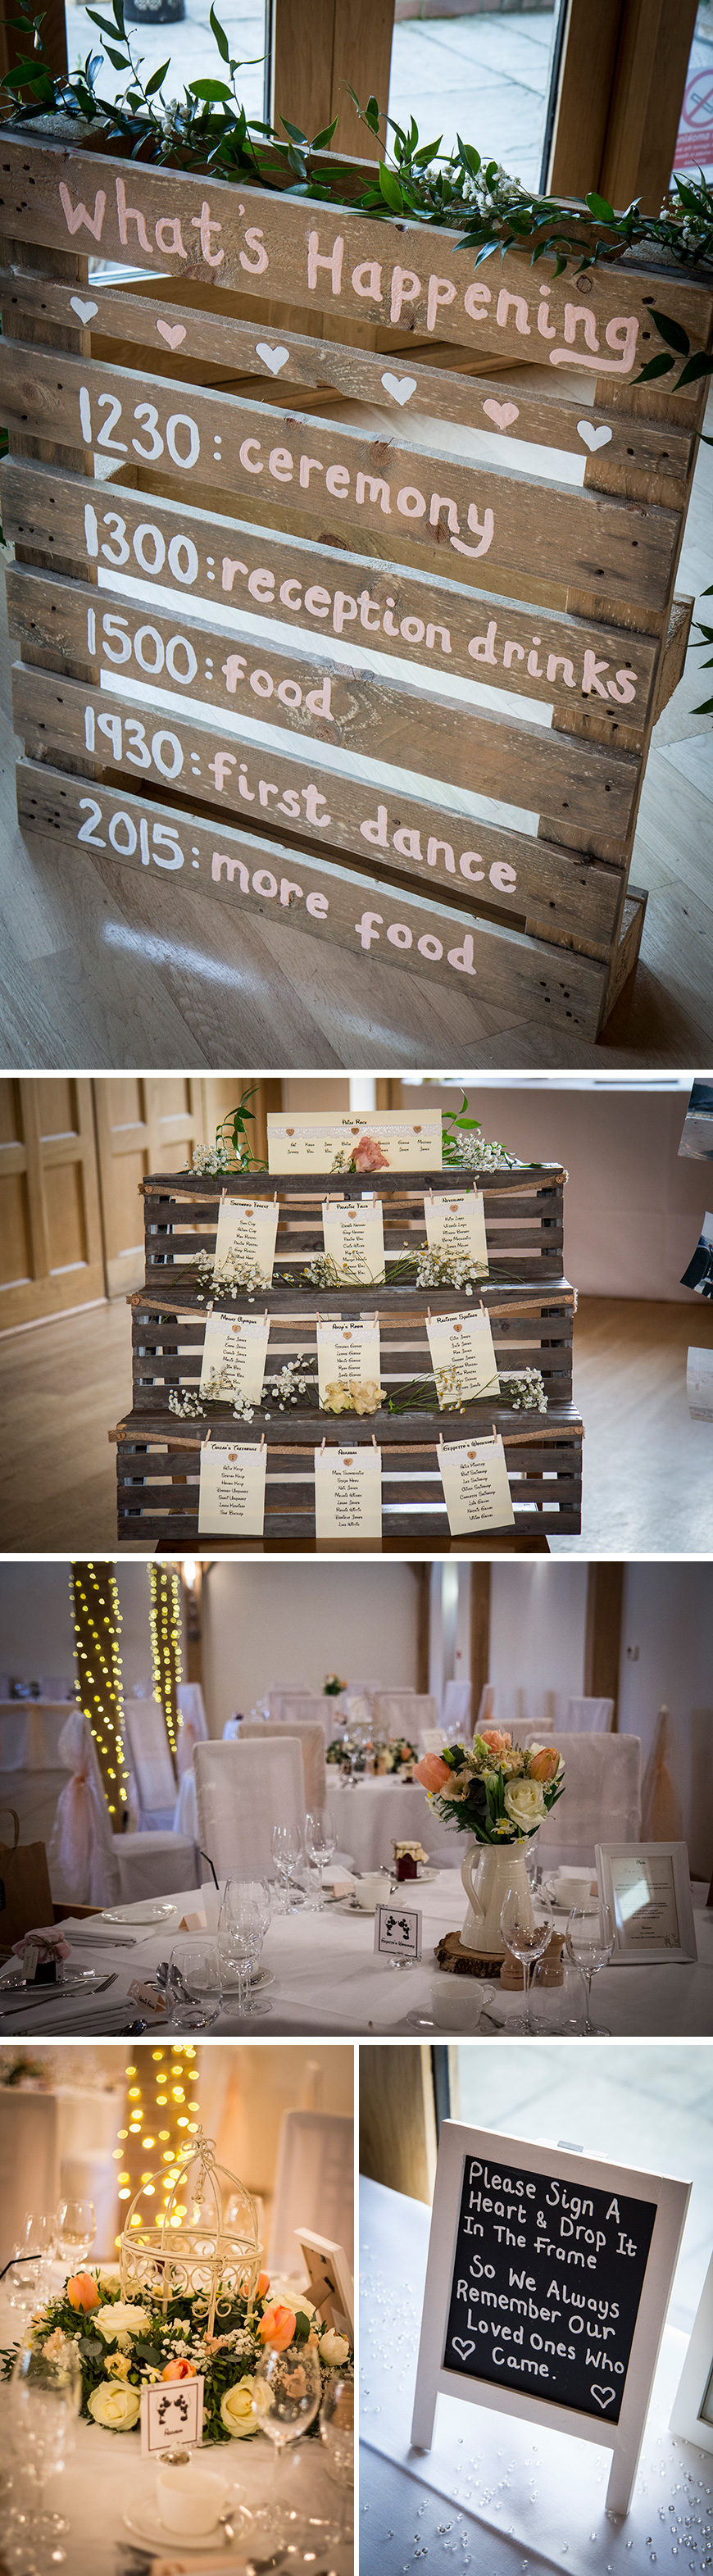 Real Wedding - Caroline and Christopher's Rustic Country Wedding at Rivervale Barn | CHWV